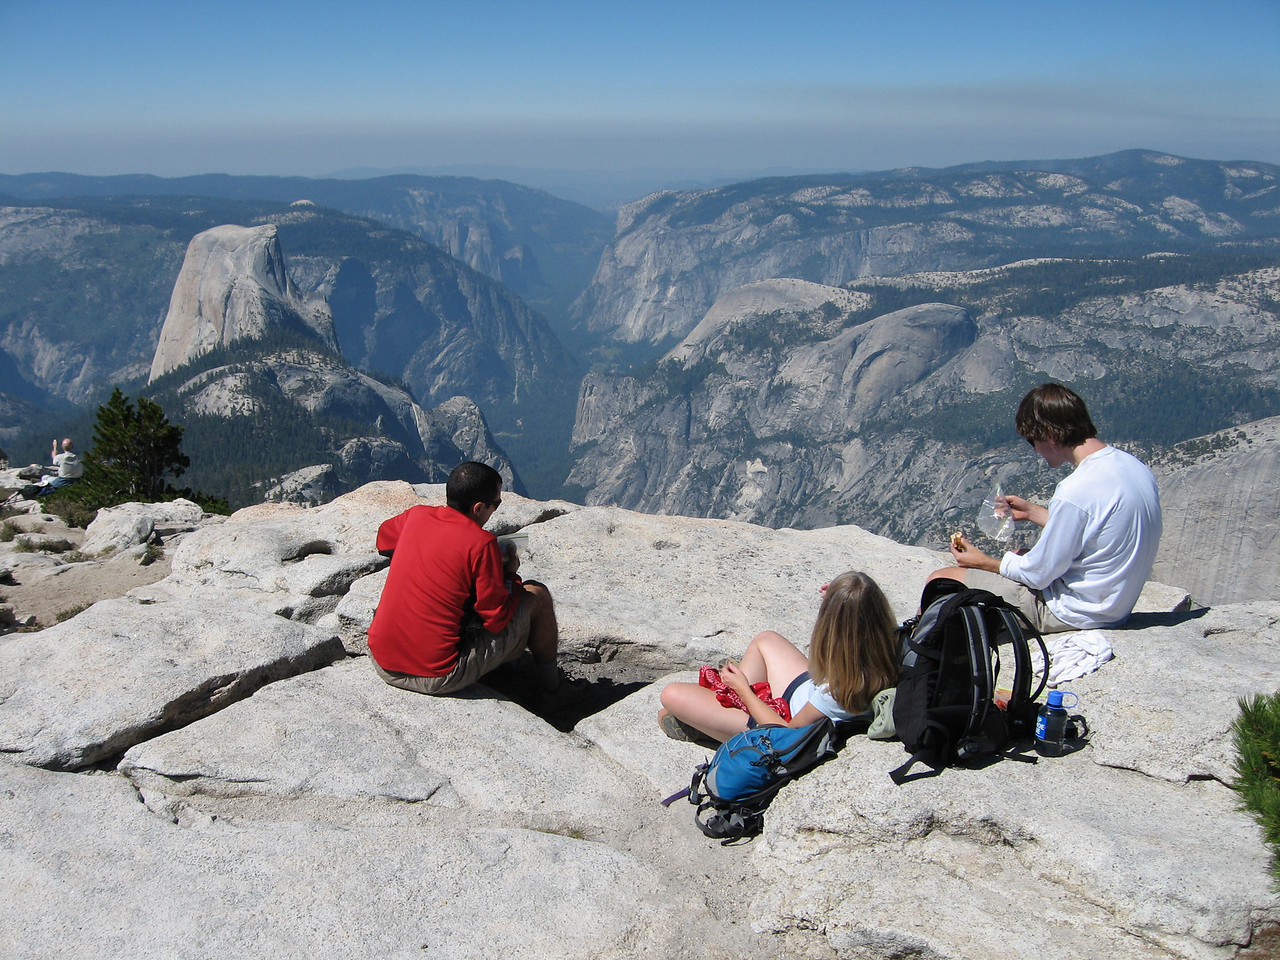 Took a nice lunch break at the top staring at our next destination (halfdome) straight ahead of us.